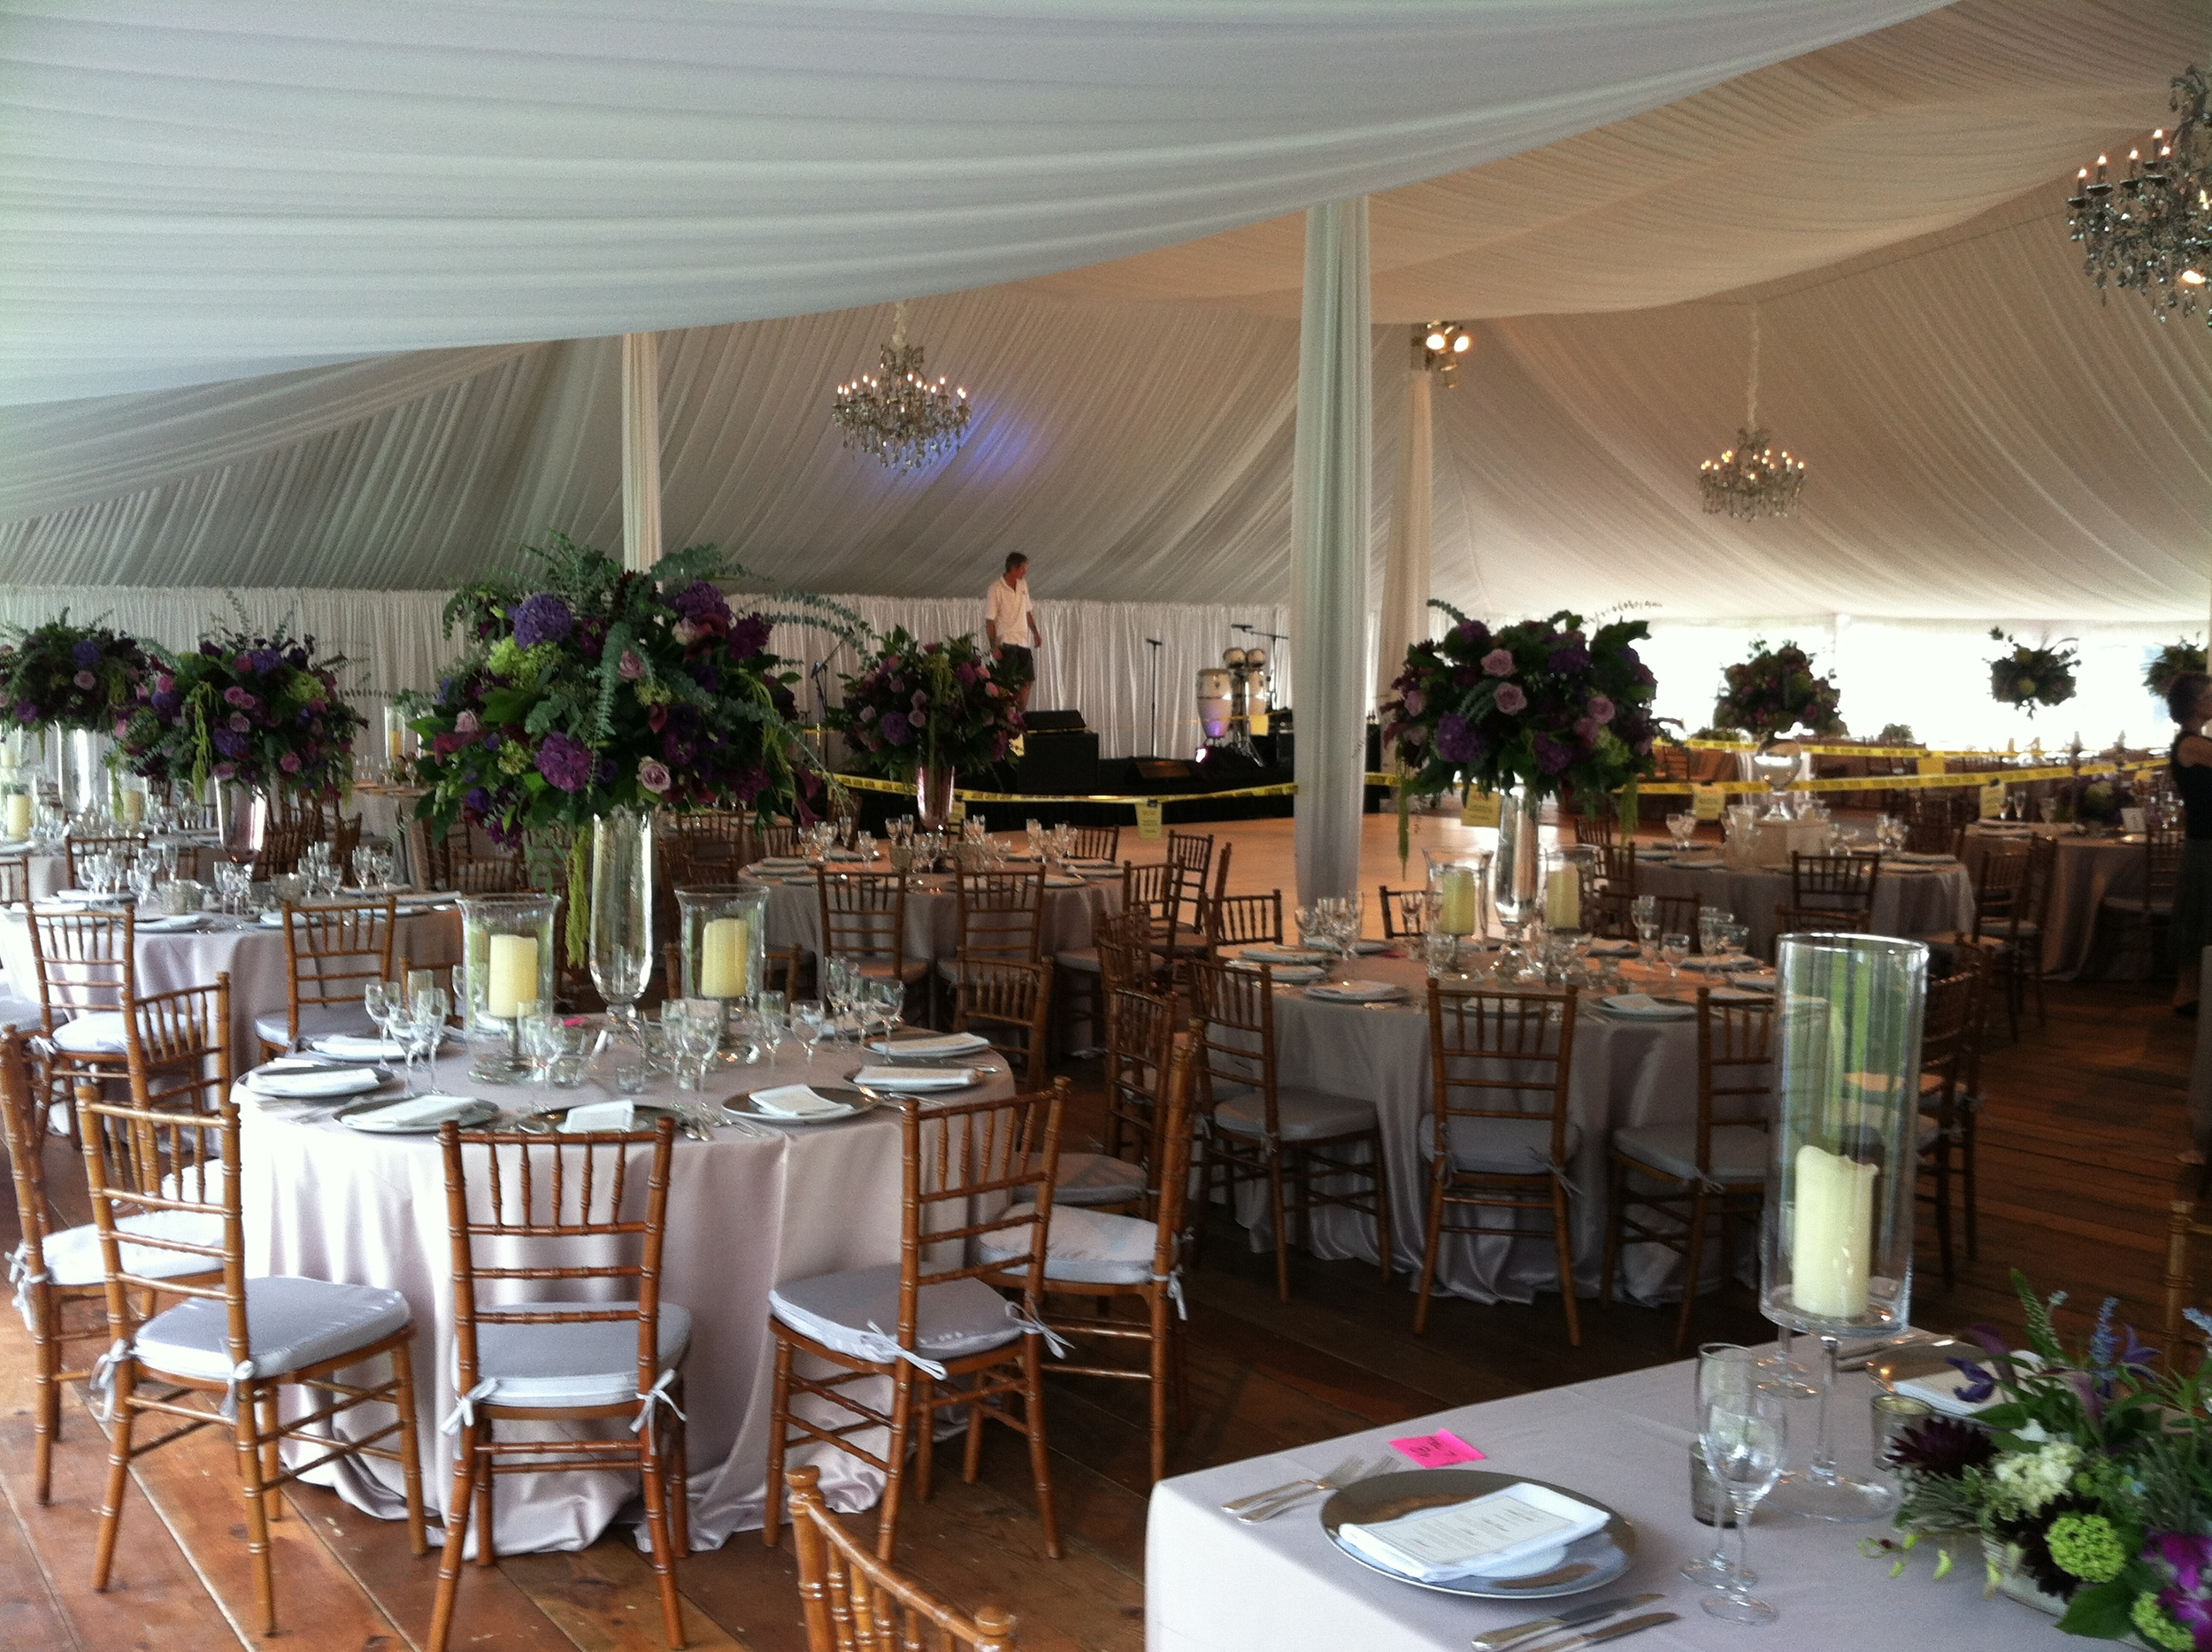 Ready for guests to arrive